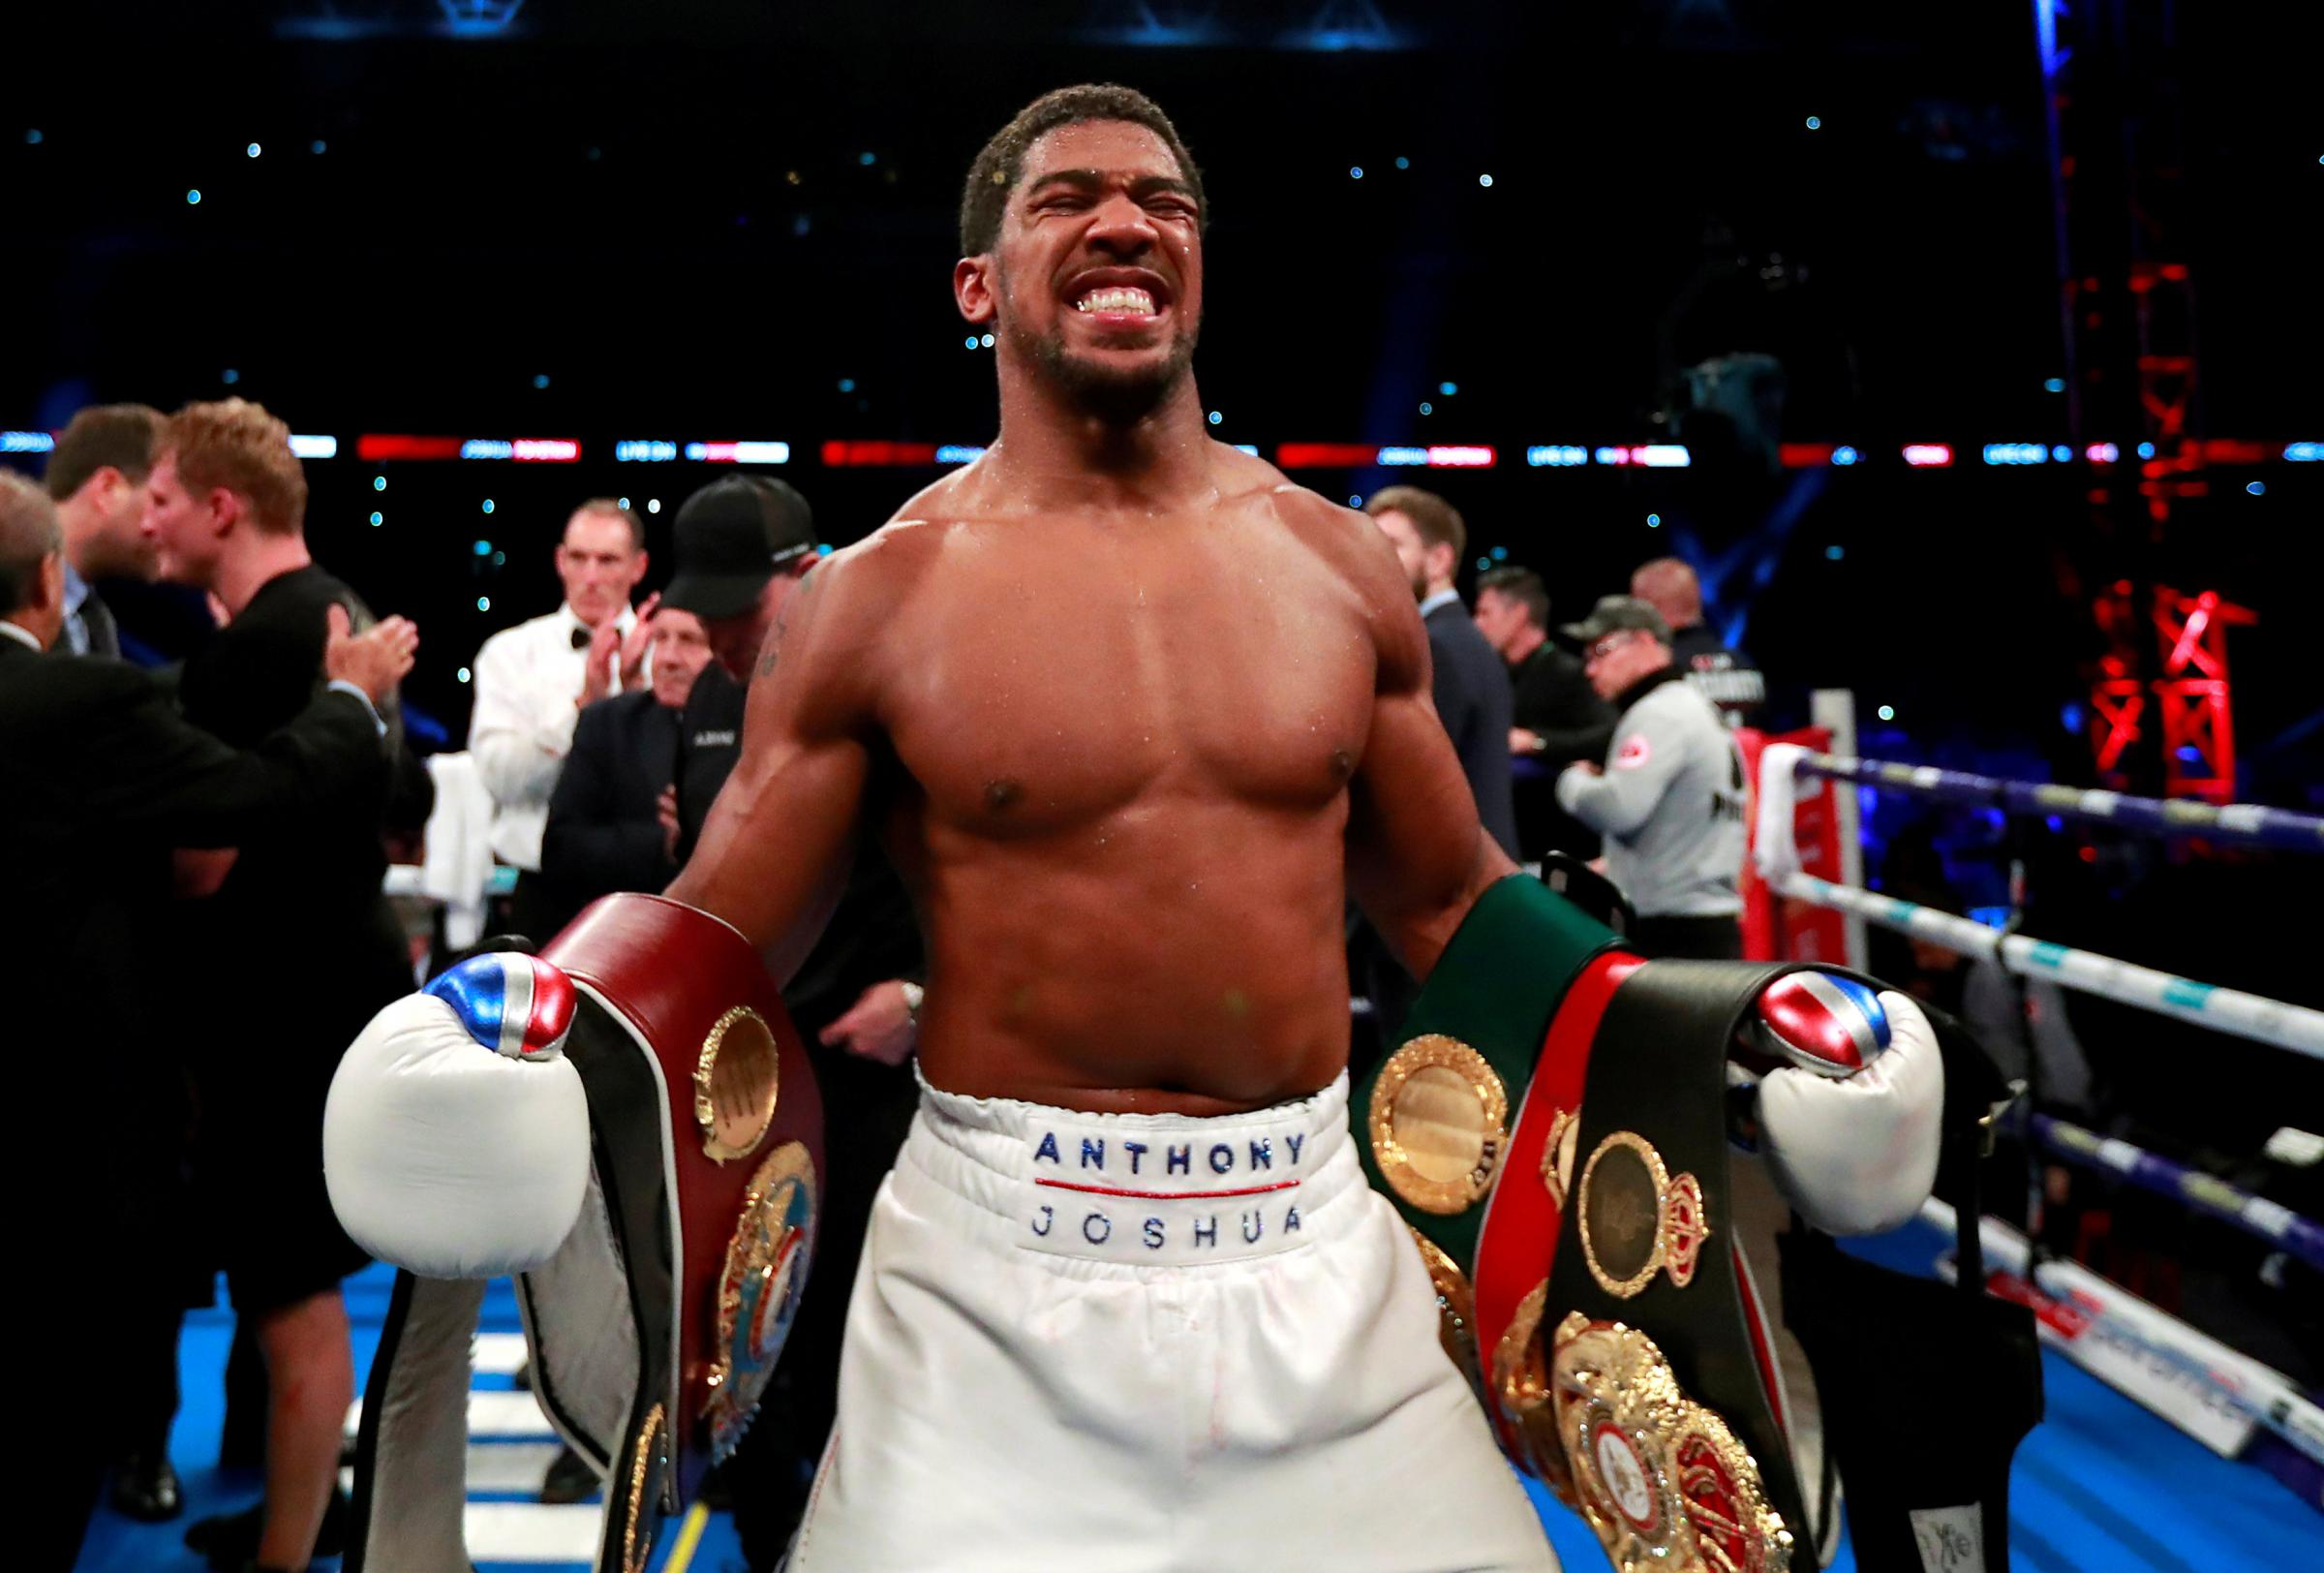 Anthony Joshua says he is ready to face Tyson Fury or Deontay Wilder. Picture: Action Images